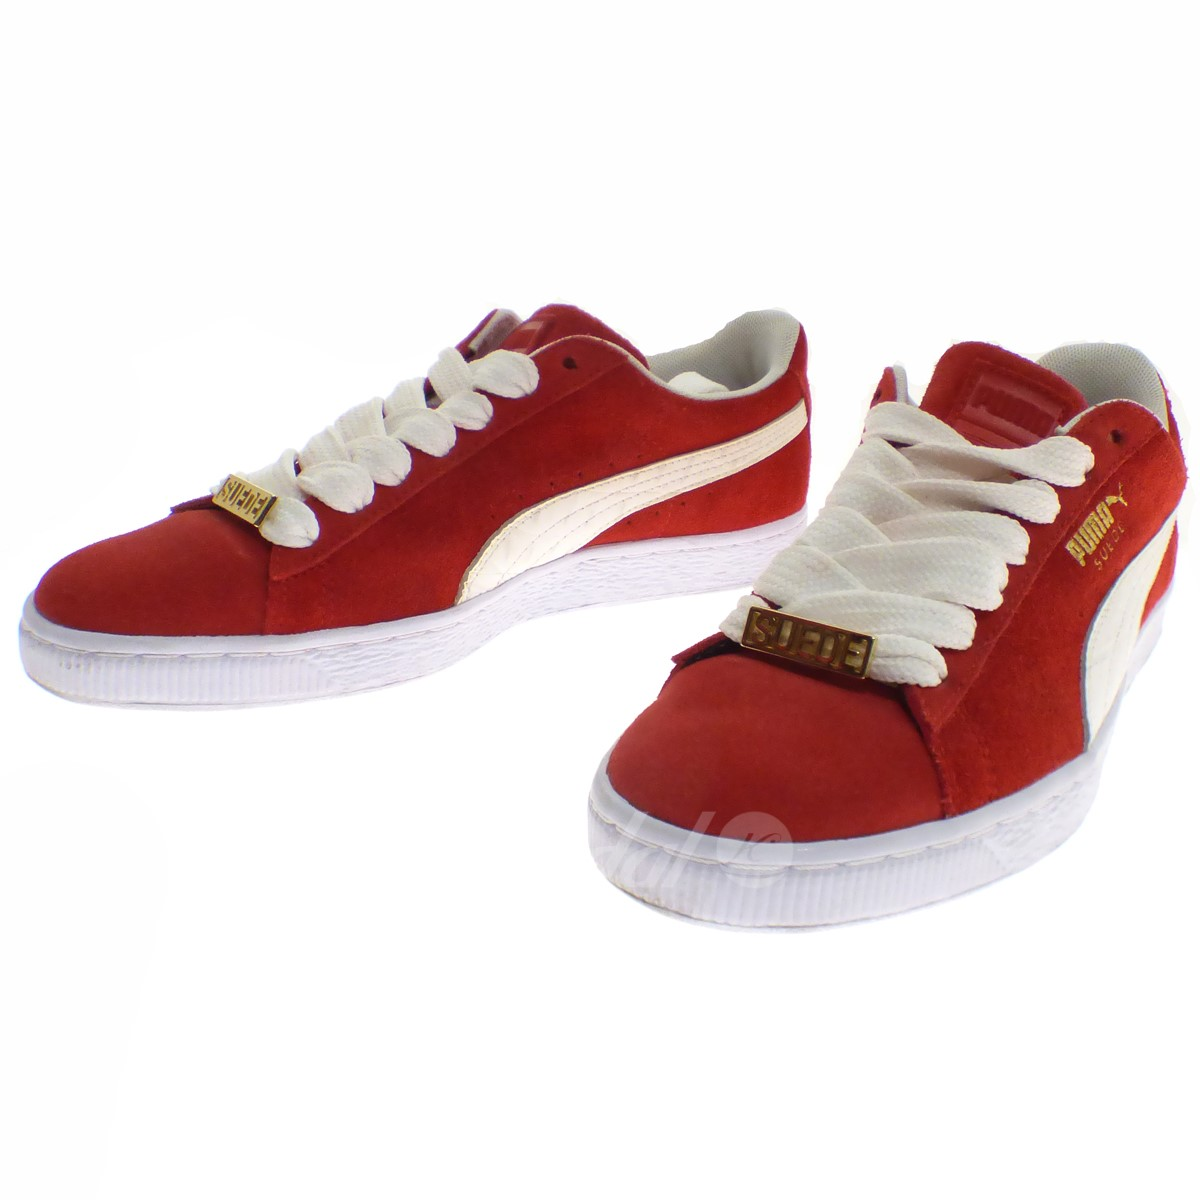 brand new 4e028 30480 PUMA SUEDE CLASSIC BBOY FAB sneakers red size: 27 (Puma)